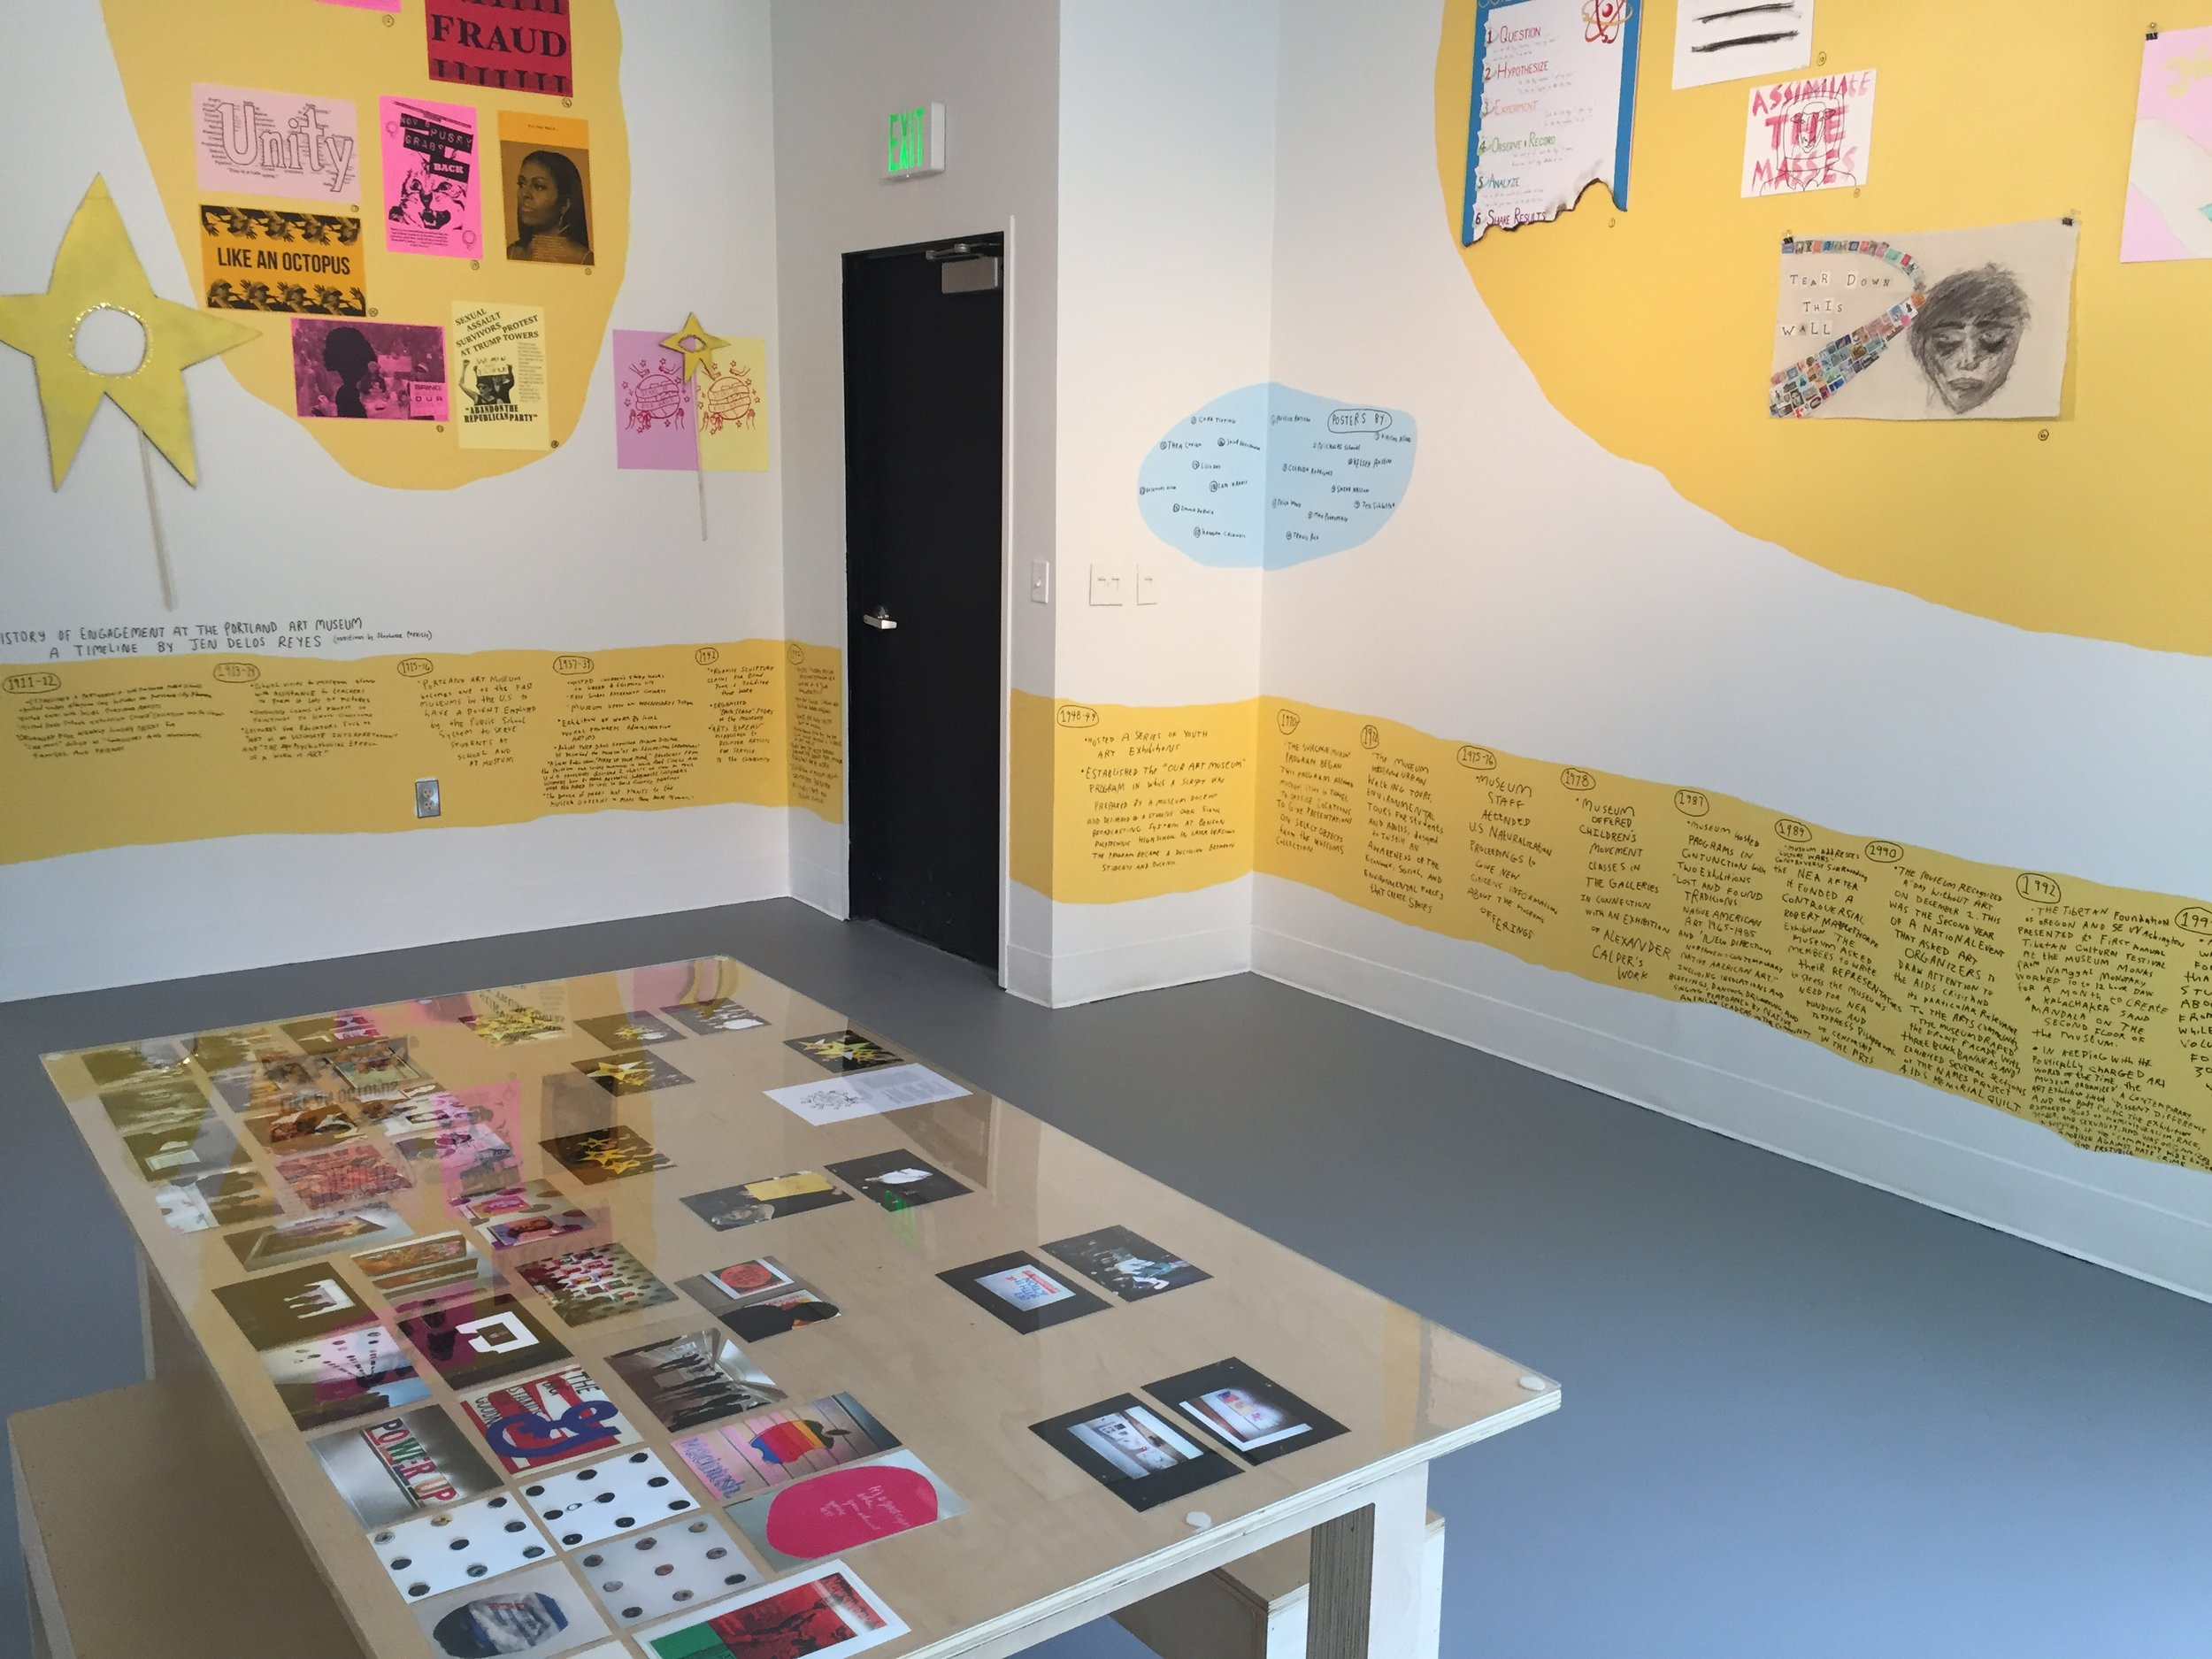 The exhibition featured a timeline of social-engagement at the Portland Art Museum, created by Jen Delos Reyes.It also featured student artwork and documentation from our time at the museum together throughout the year.